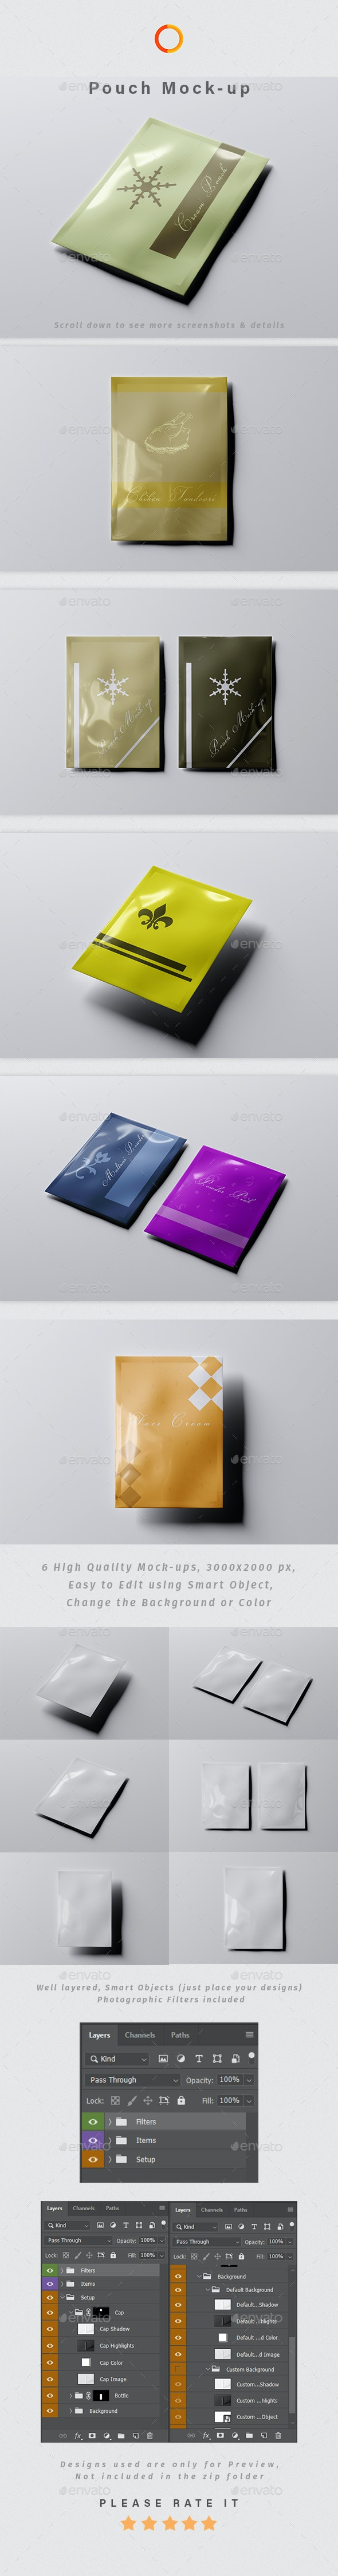 Rectangle Pouch Mock-up - Packaging Product Mock-Ups